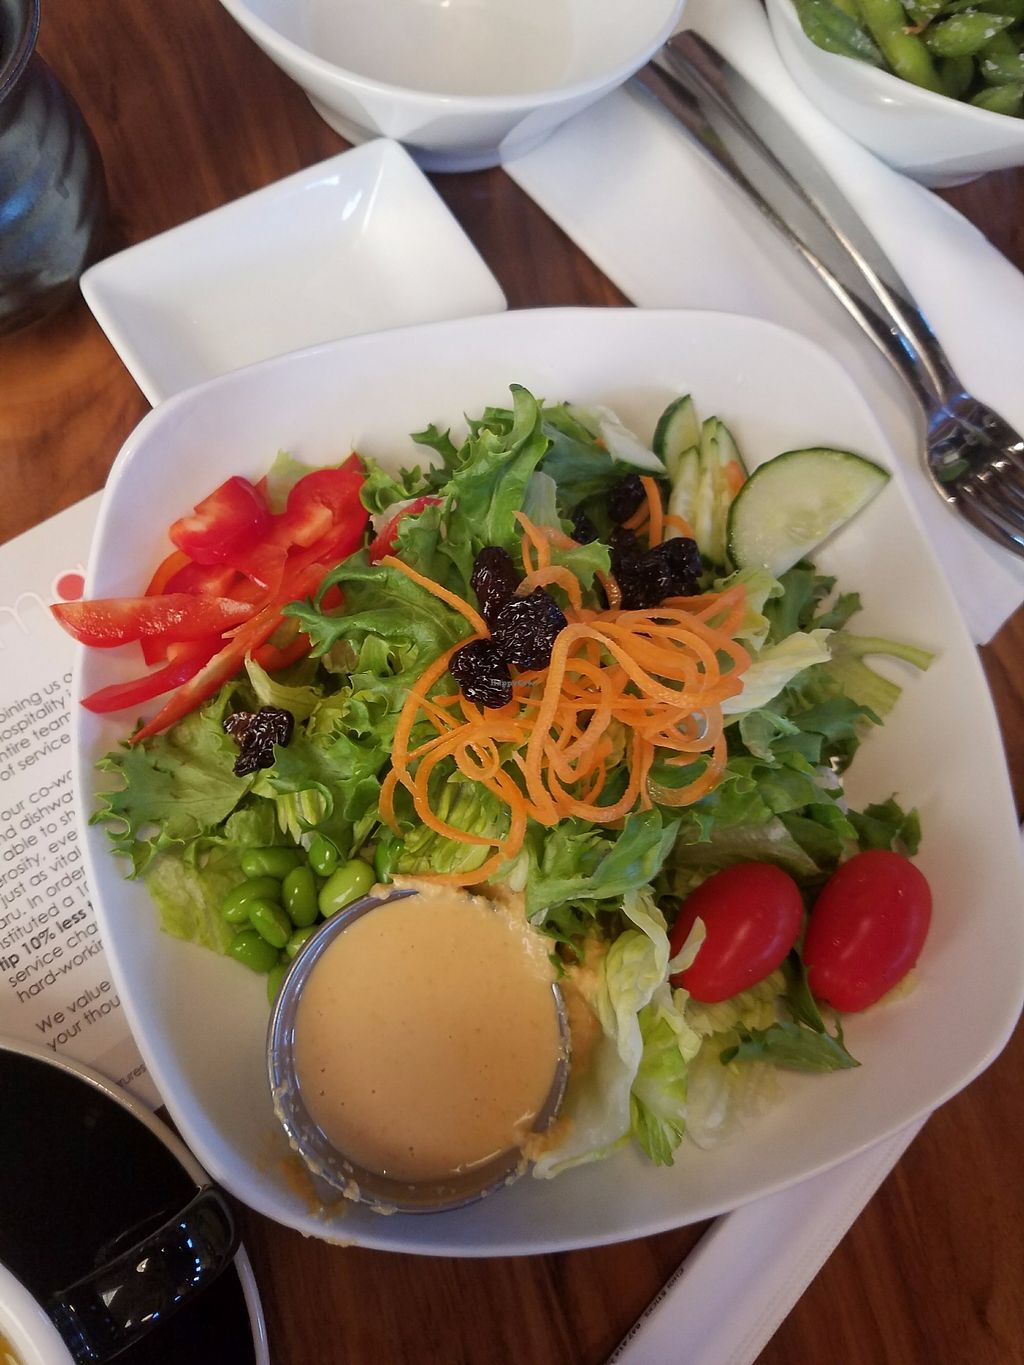 """Photo of Maru Sushi & Grill  by <a href=""""/members/profile/MerryRose"""">MerryRose</a> <br/>House salad with maru dressing and local veggies <br/> August 30, 2017  - <a href='/contact/abuse/image/99941/299155'>Report</a>"""